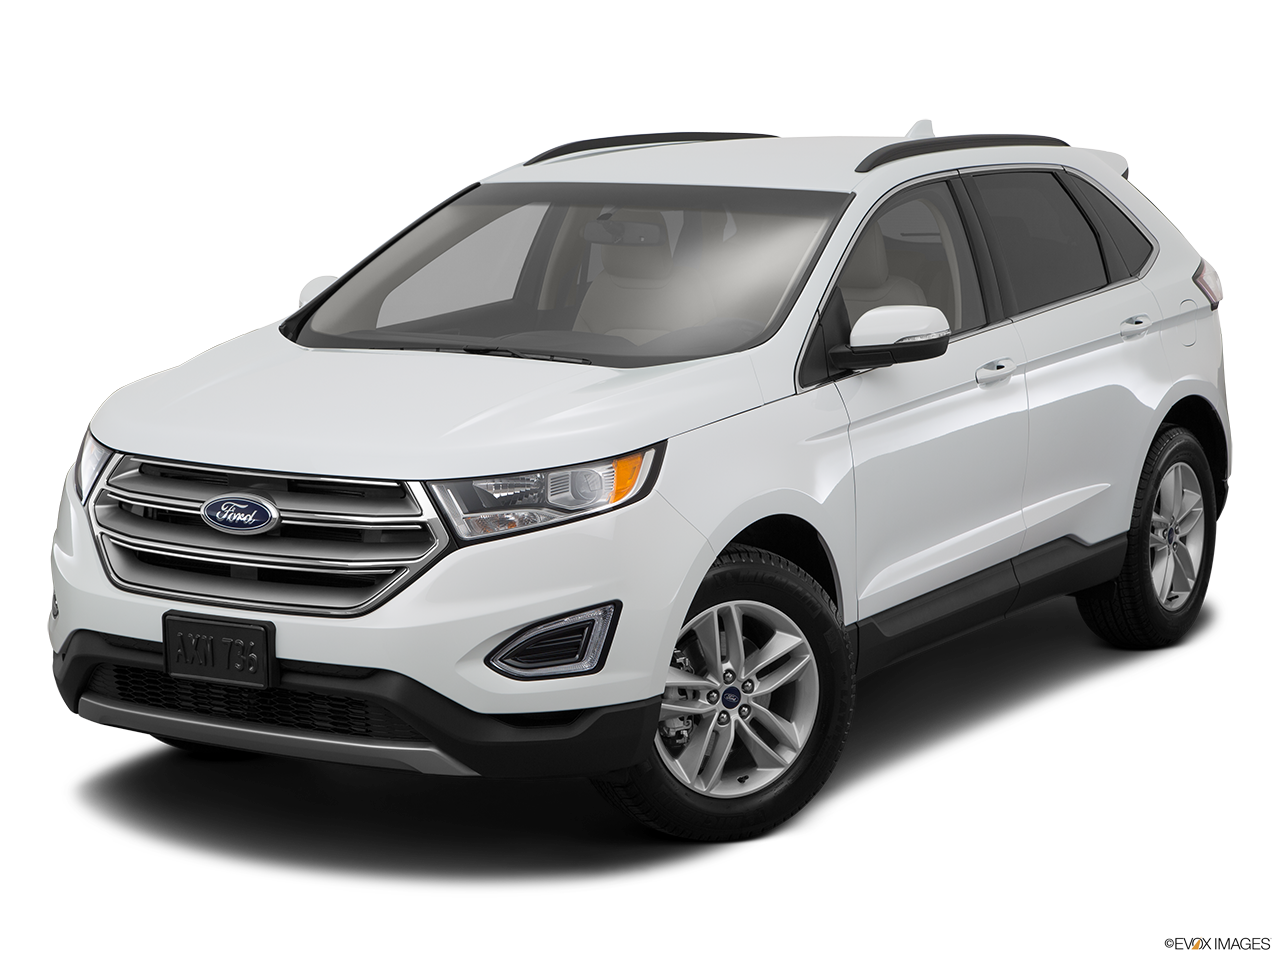 Test Drive A 2015 Ford Edge at Hoffman Ford in Harrisburg